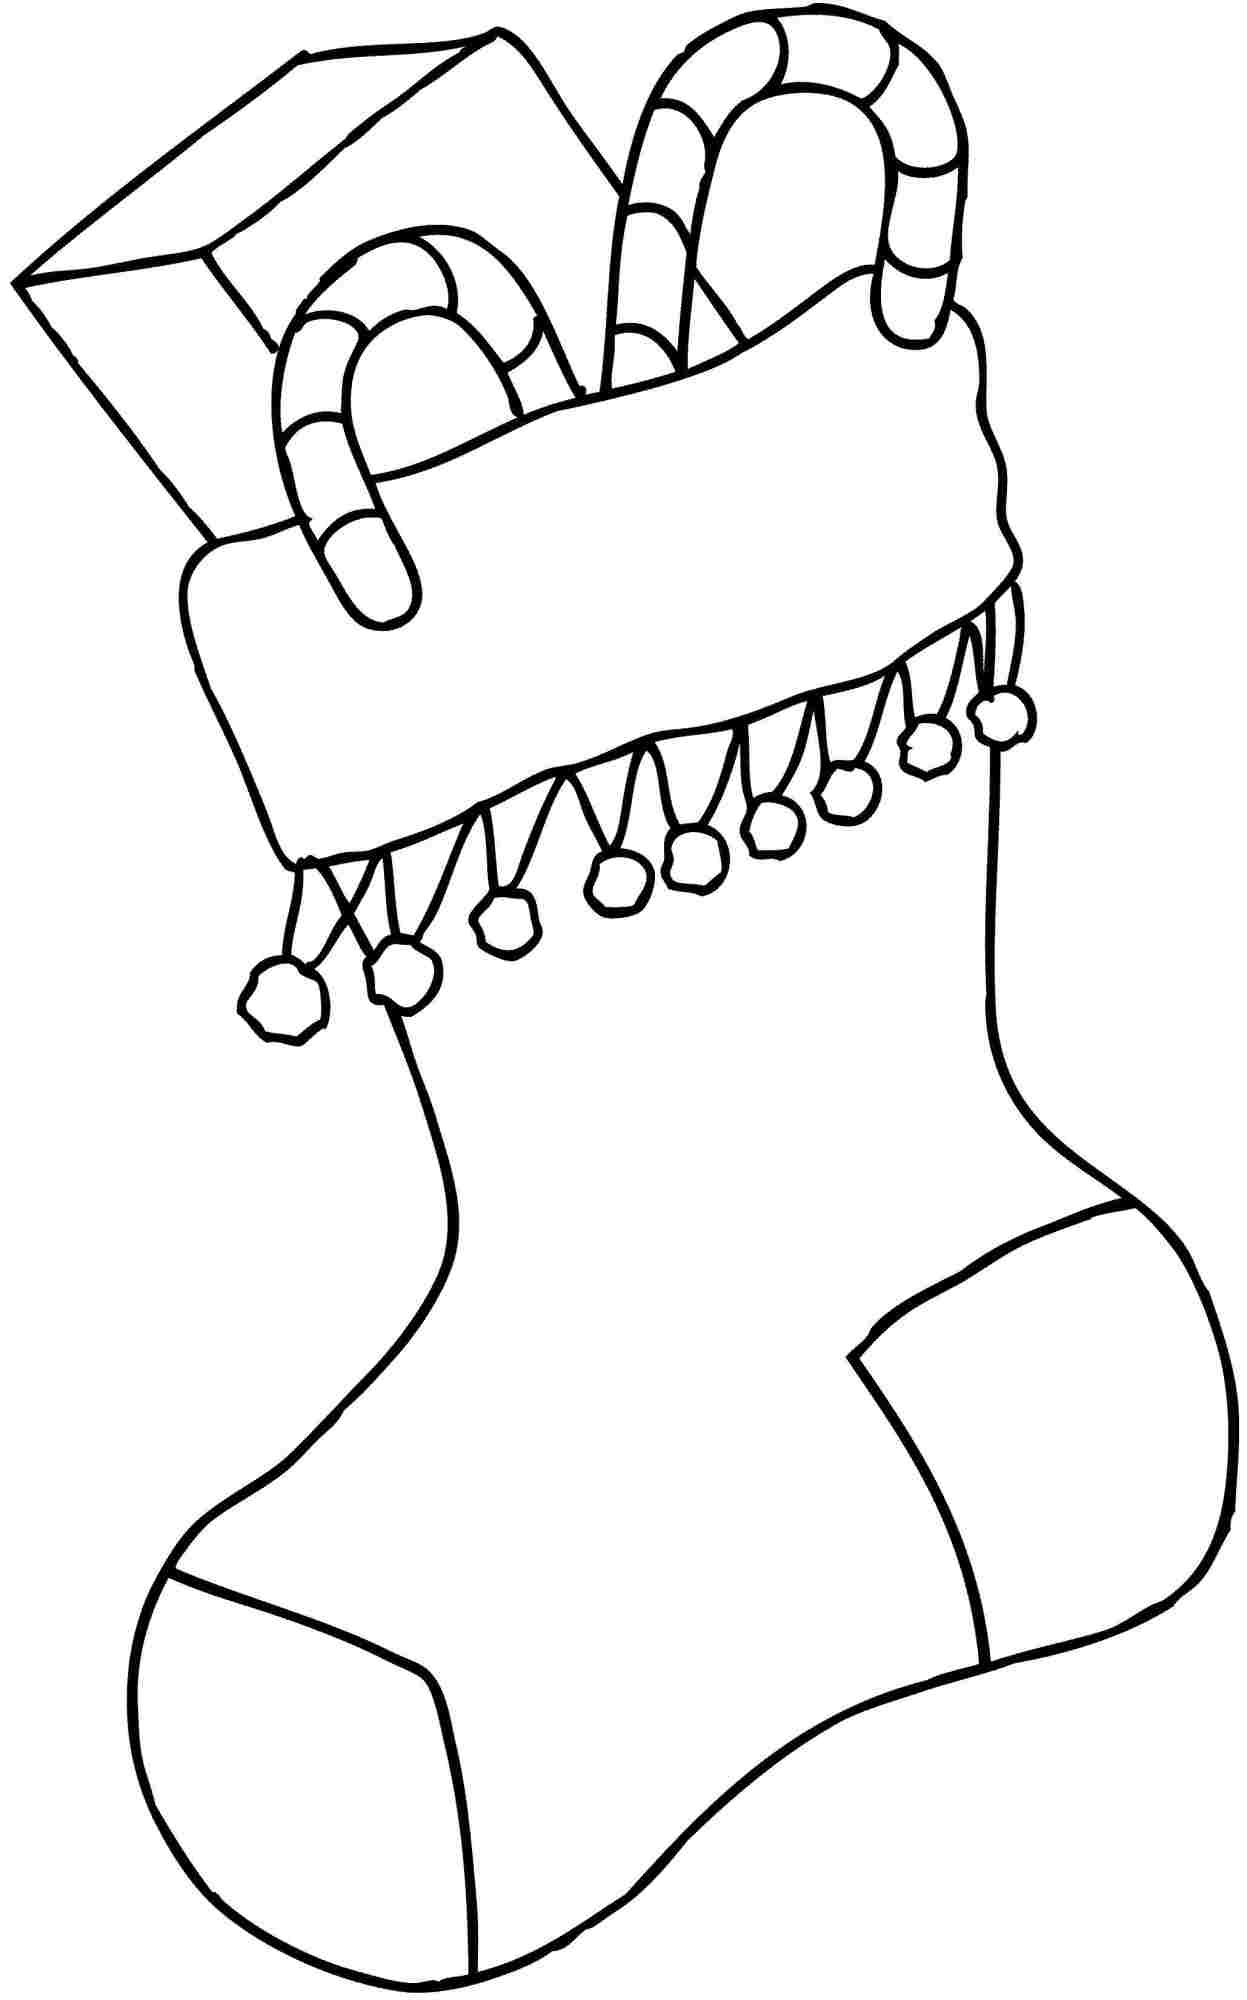 coloring pages christmas stockings - photo#6